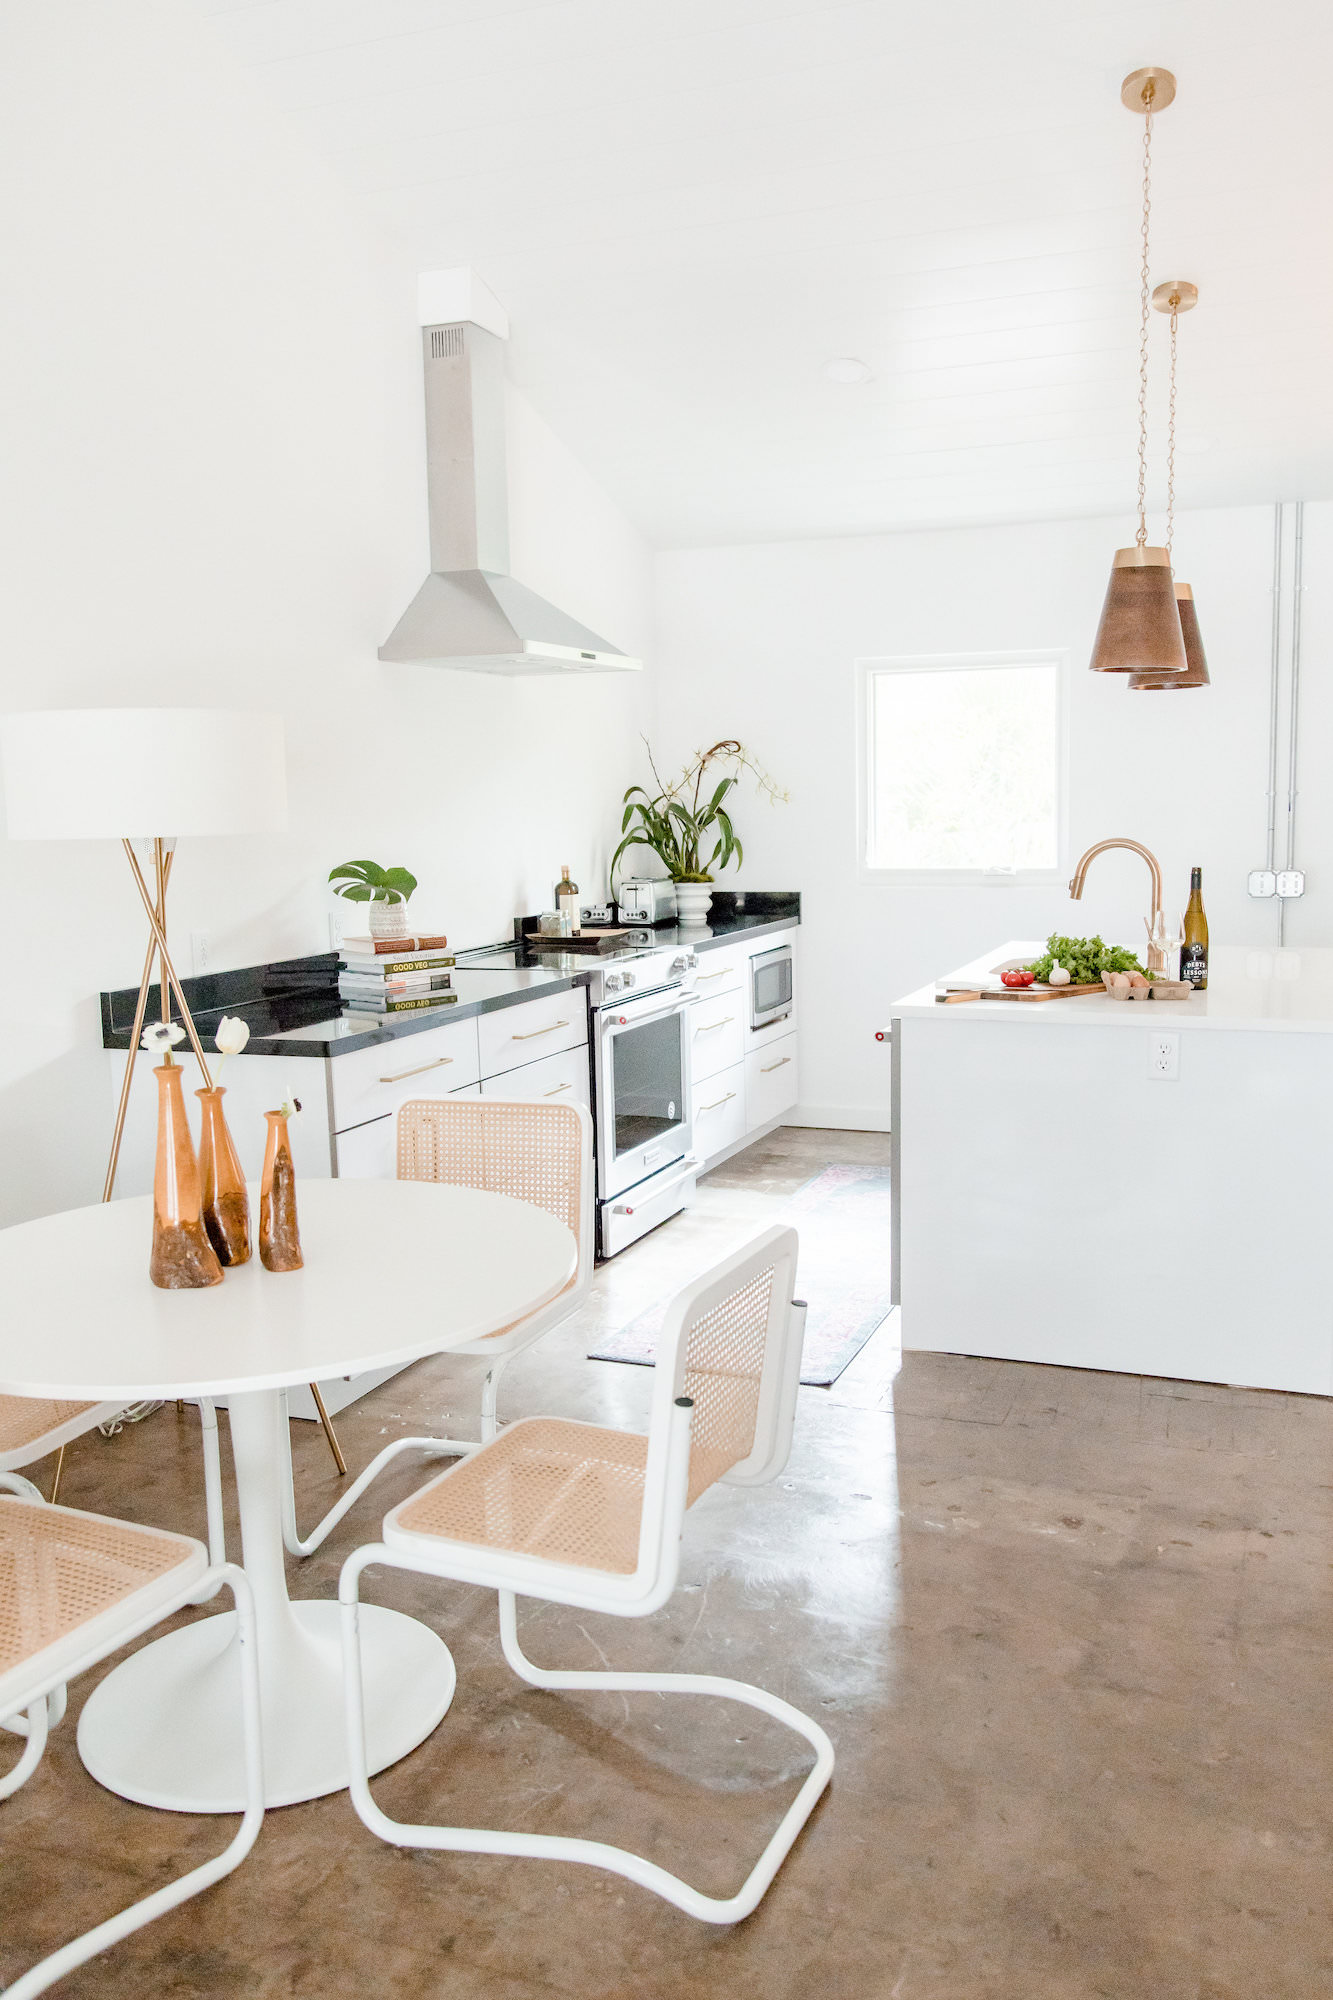 mid-century-modern-kitchen-vacation-rental-the-park-white-wicker-chairs-web-resolution.jpg